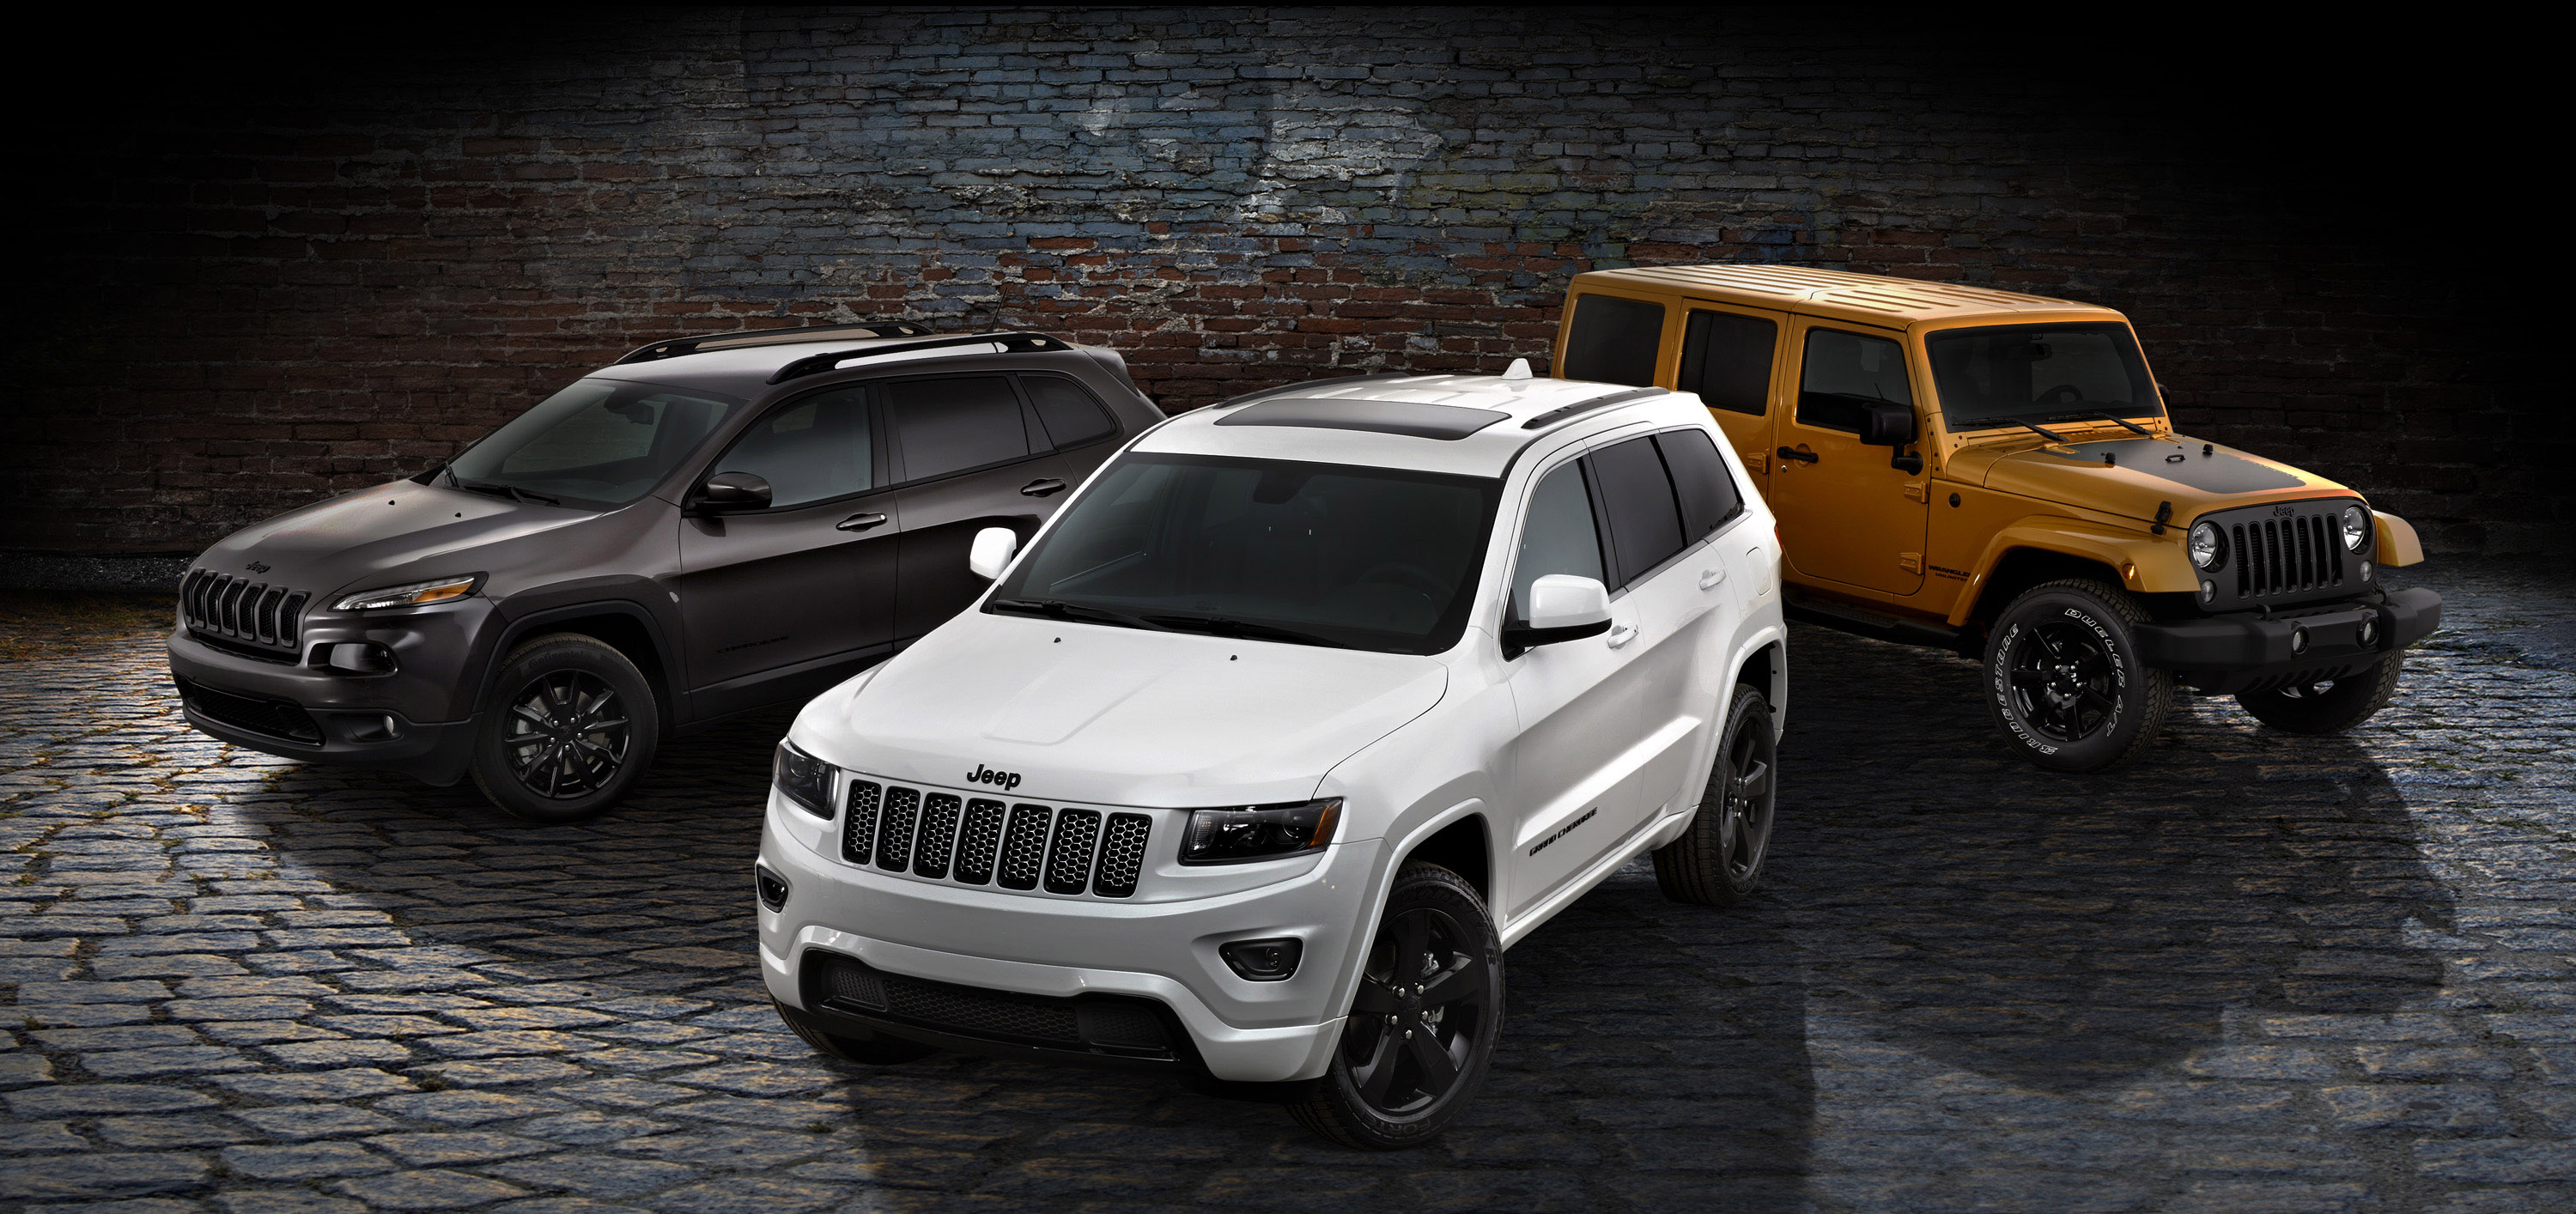 2014 jeep cherokee grand cherokee and wrangler get altitude models. Cars Review. Best American Auto & Cars Review